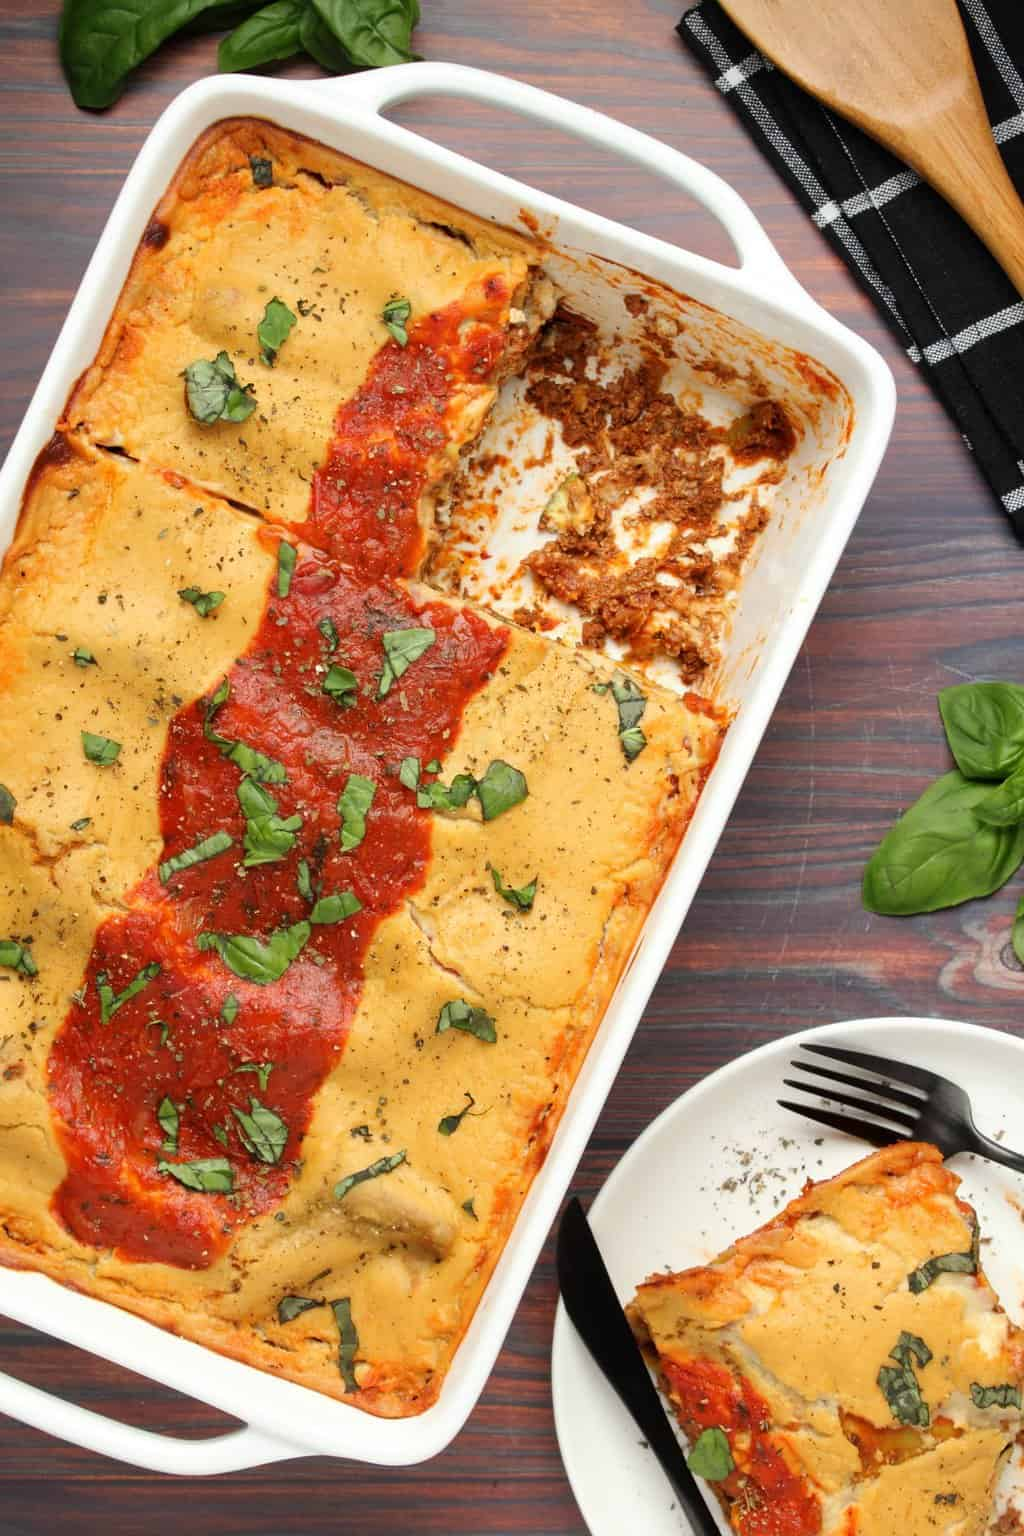 Vegan lasagna in a white dish with one slice removed.